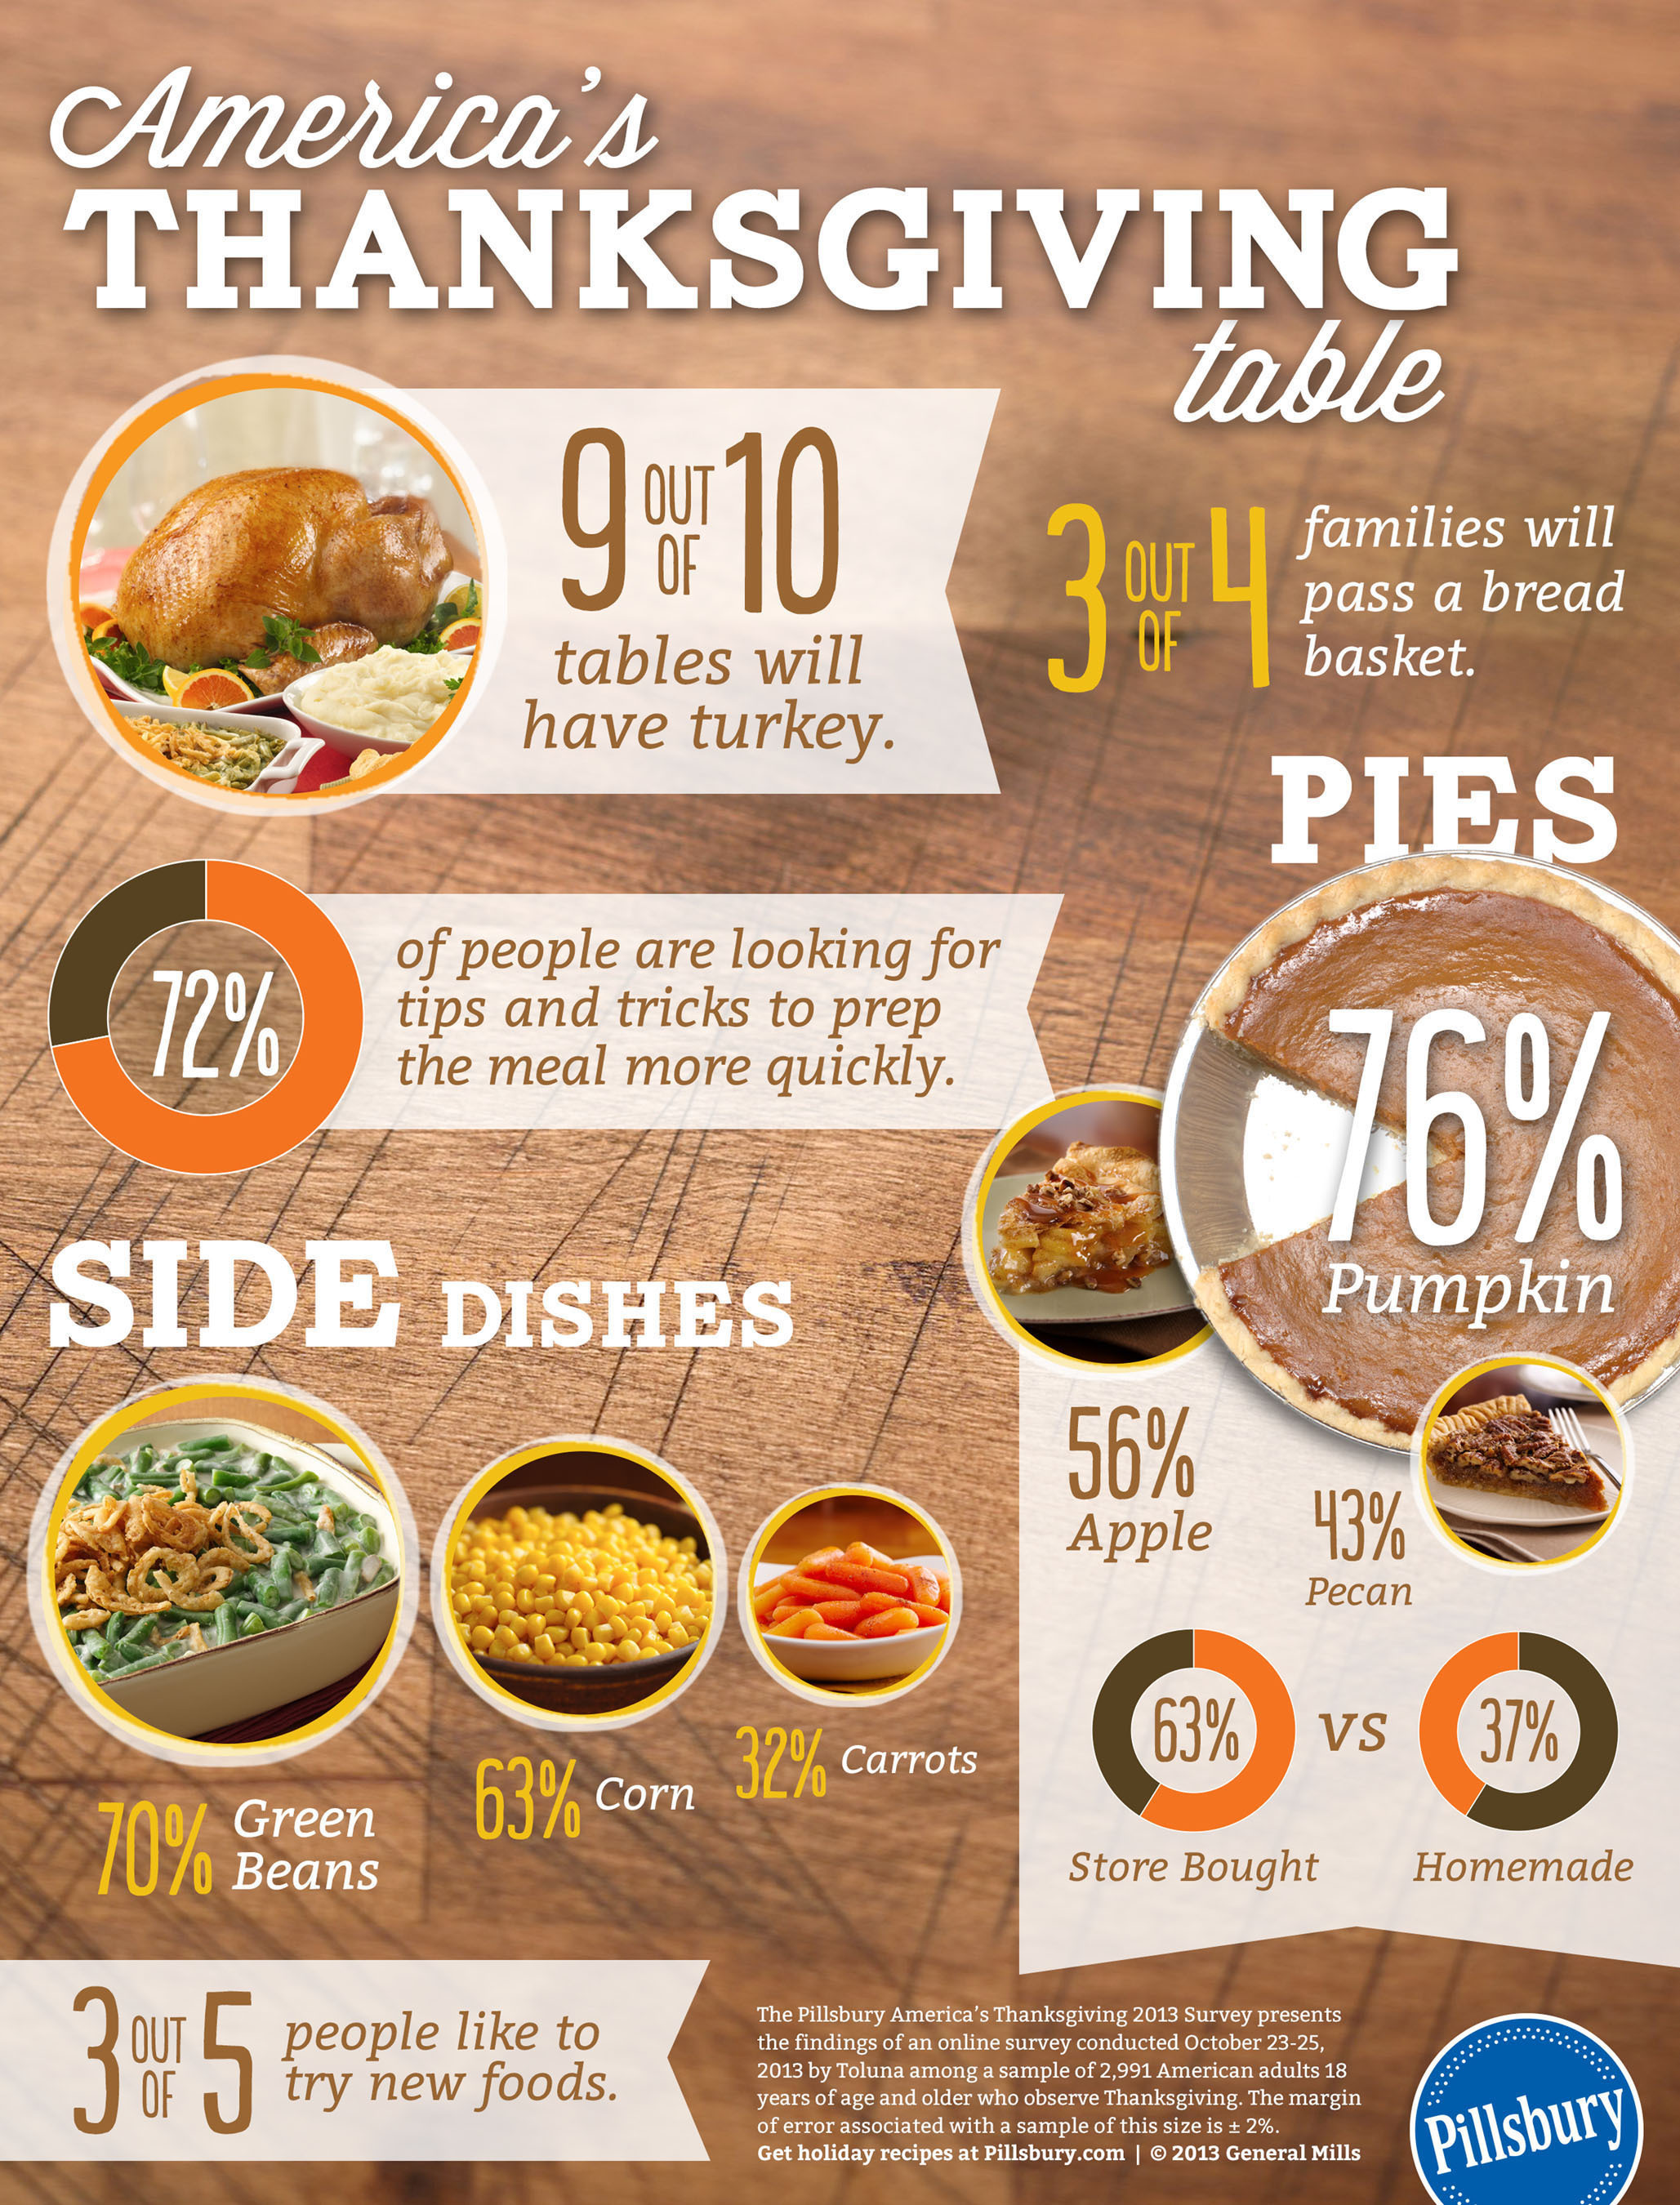 Tradition holds true across the country when it comes to preparing a Thanksgiving meal; however, according to a new survey conducted by Pillsbury, today's holiday table may have a new look as families seek to modernize classic recipes and incorporate time-saving techniques.  America's Thanksgiving Table 2013 Survey reveals how the Thanksgiving meal will look for the majority of the nation, including the desire for new foods or preparations, and some of the challenges that people face while preparing the big meal.  (PRNewsFoto/Pillsbury)